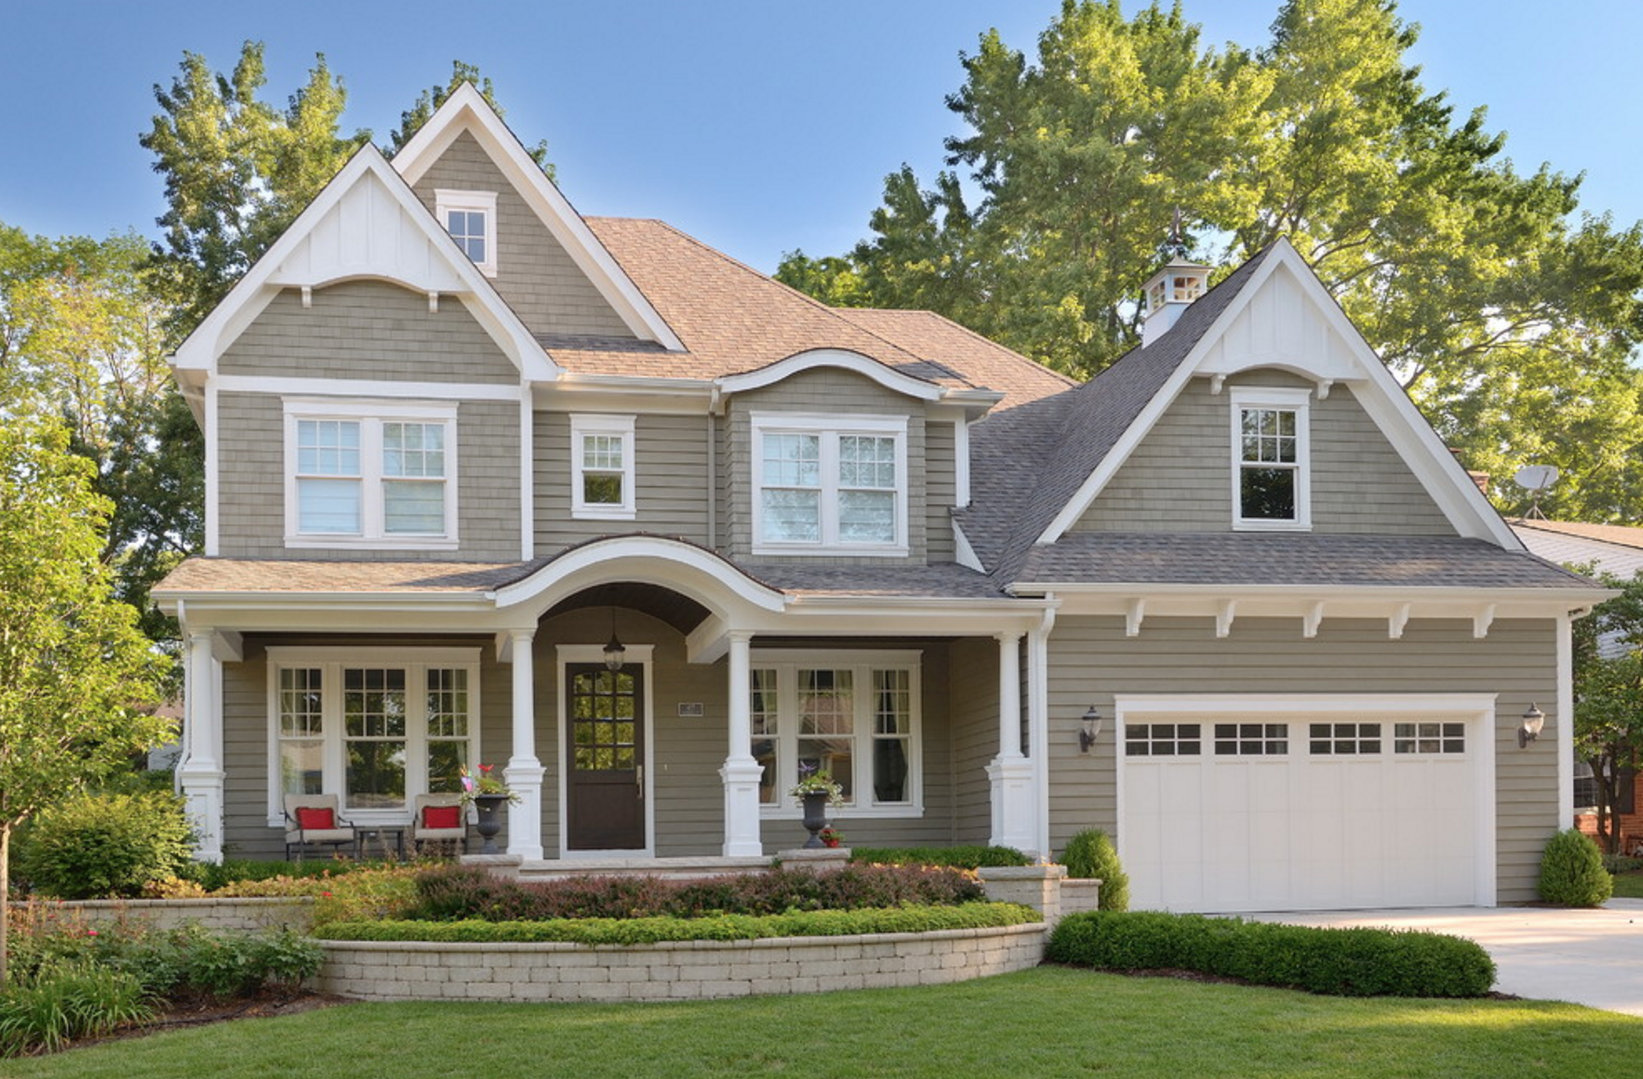 Remodelaholic exterior paint colors that add curb appeal for Benjamin moore exterior house paint